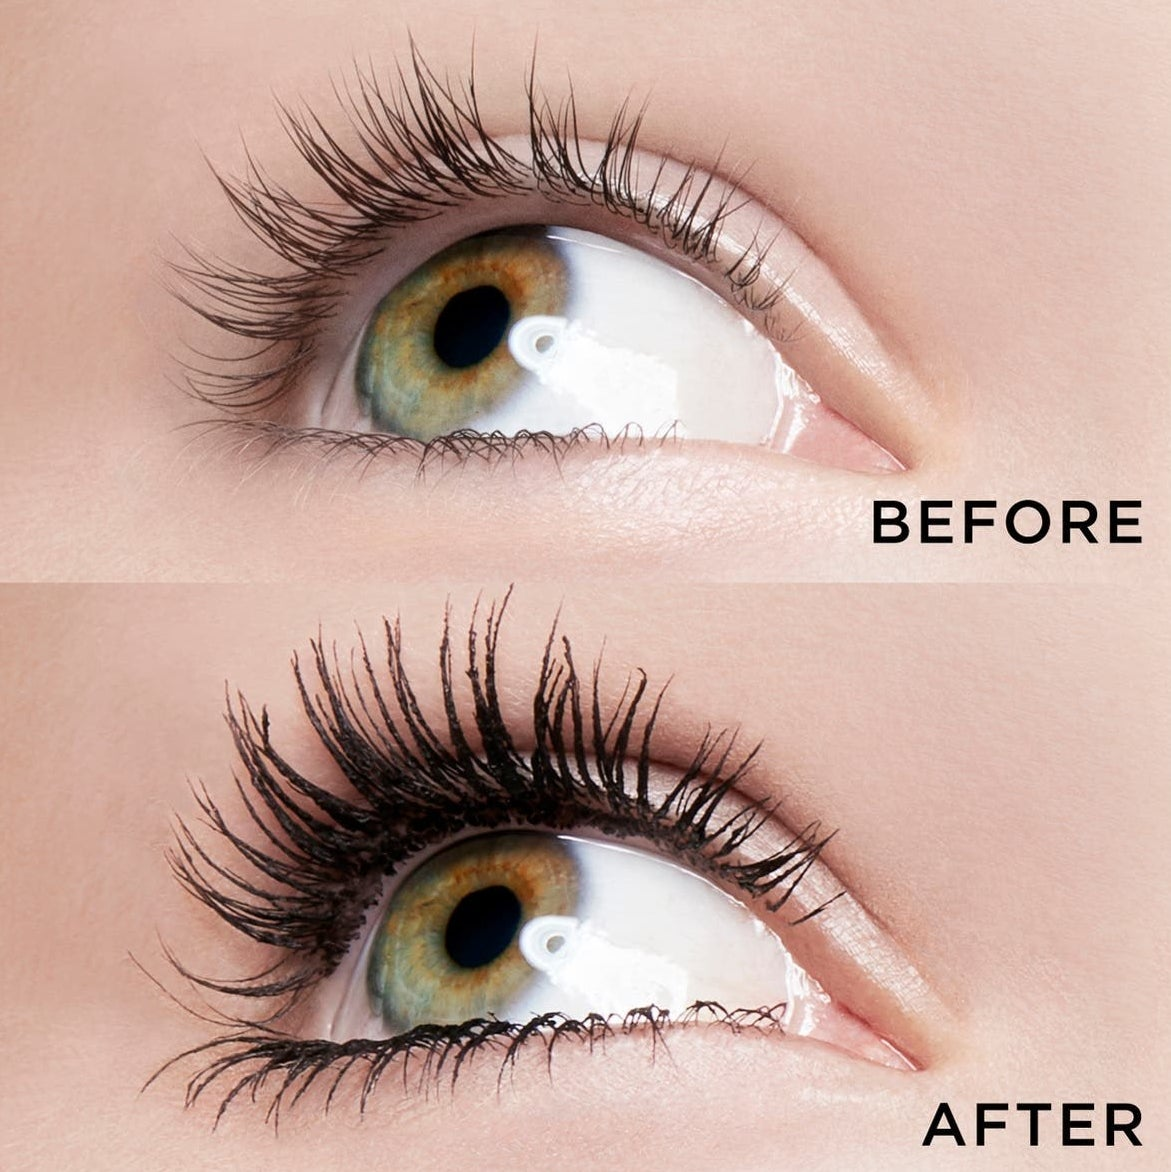 A model before and after applying the product, with thick and luscious lashes after